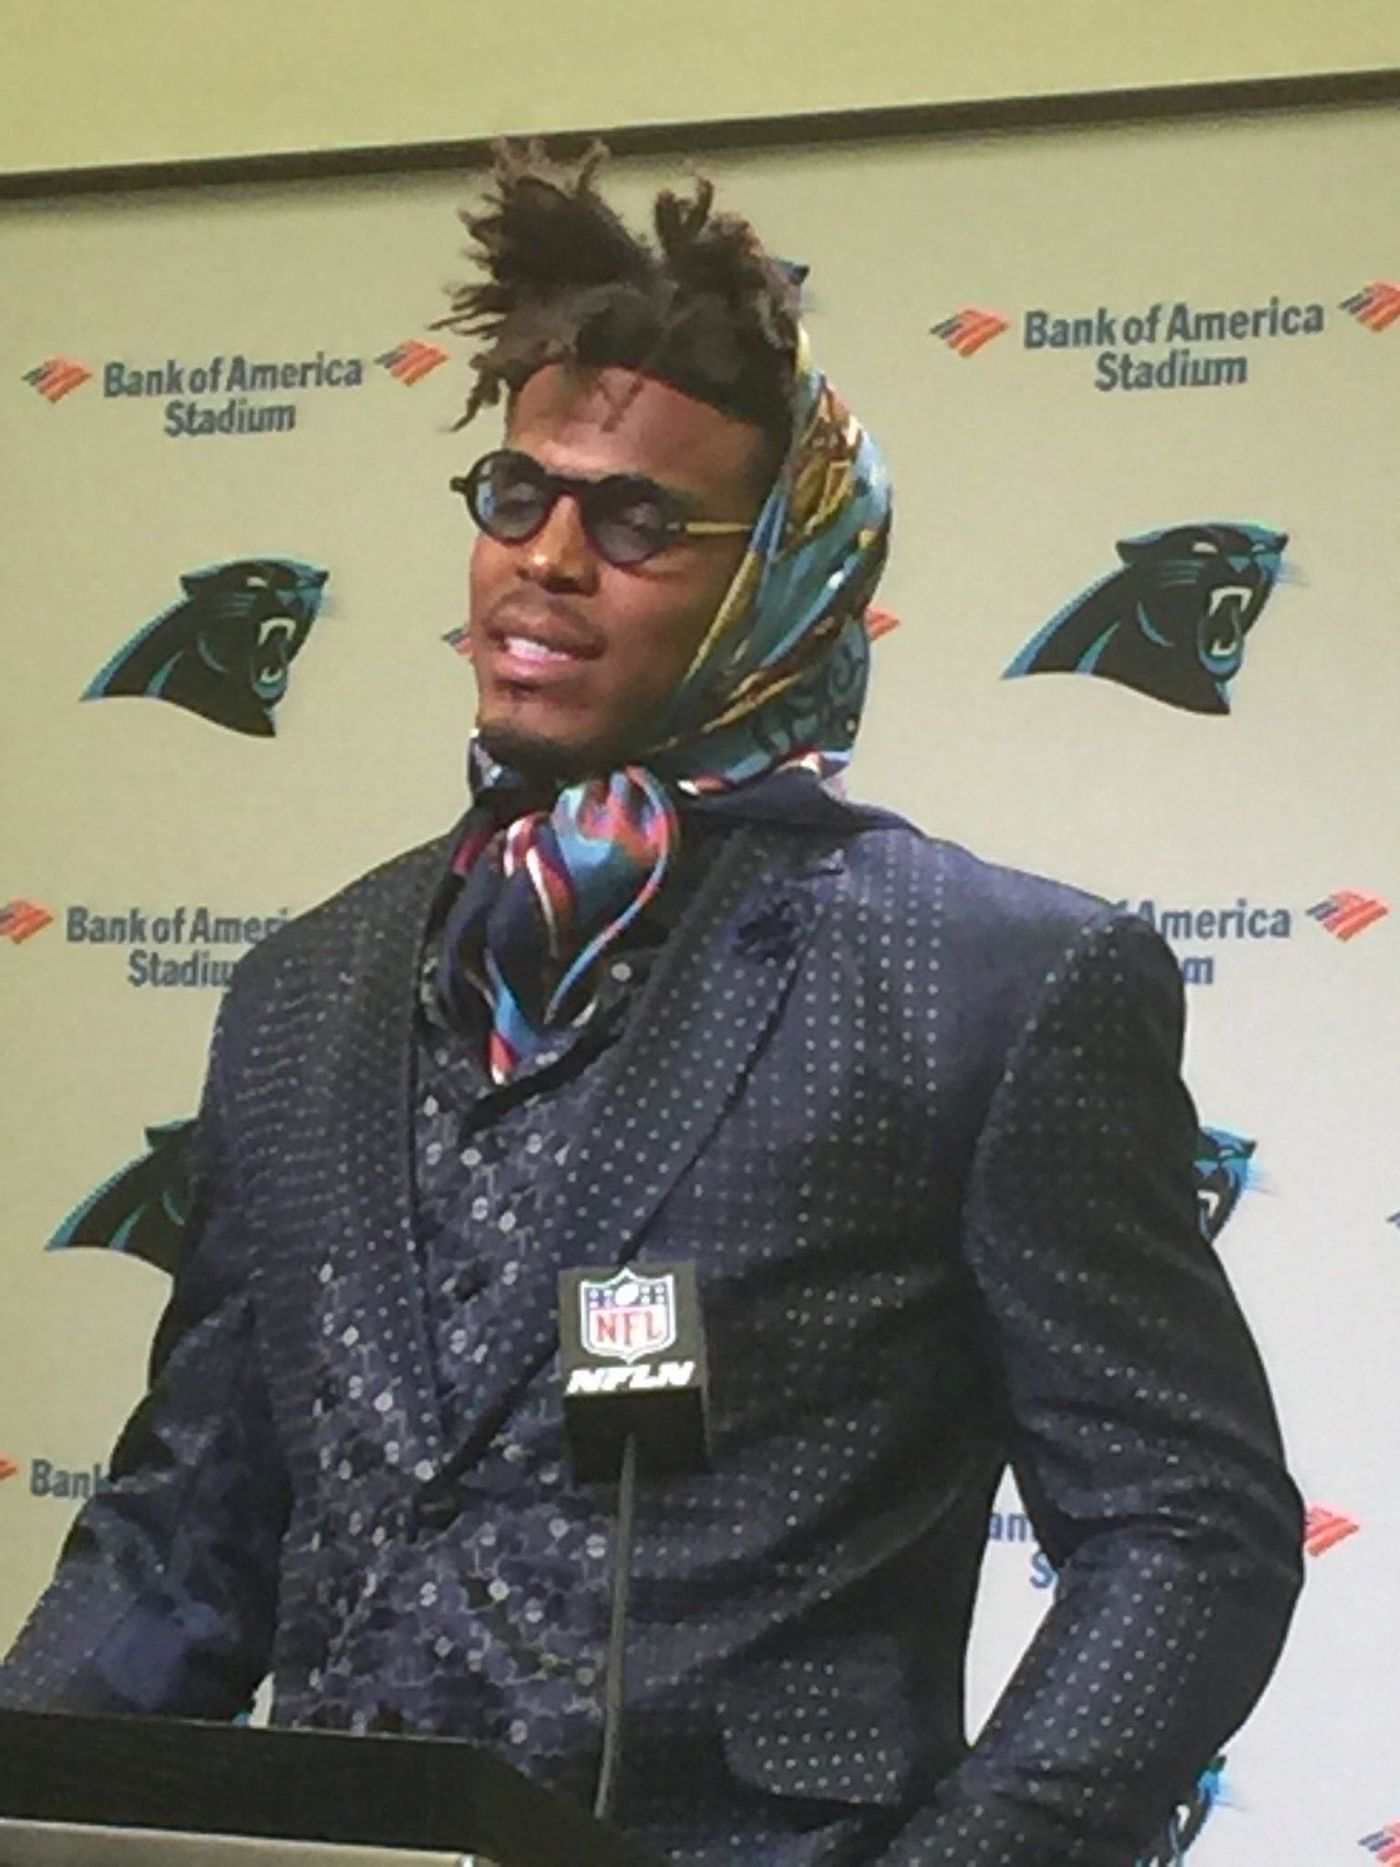 Cam Newton S Outfits Graded By A Fashion Expert And A Fashion Idiot Sbnation Com